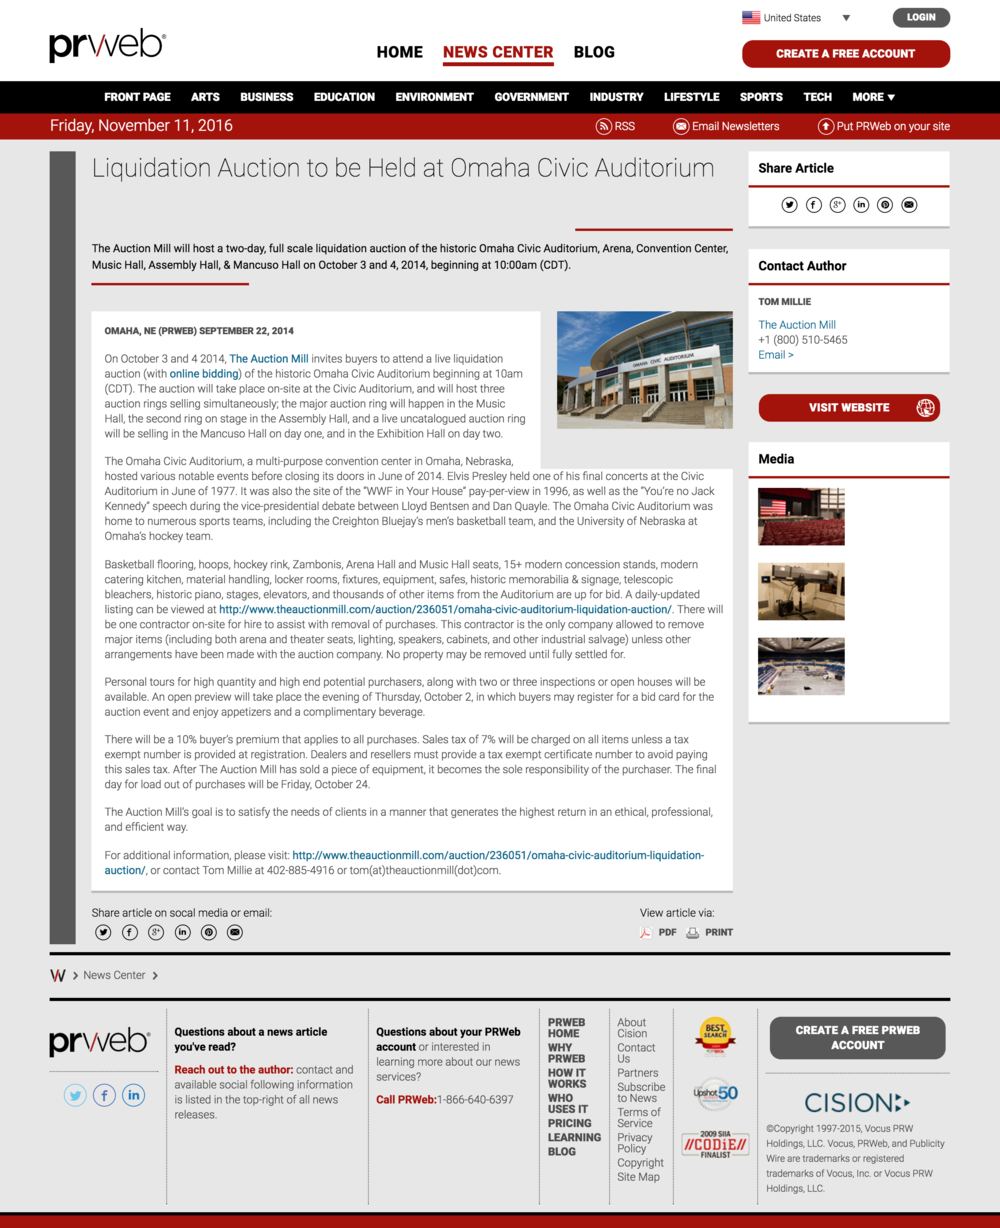 screencapture-prweb-releases-2014-9-prweb12169680-htm-1478889576814.png